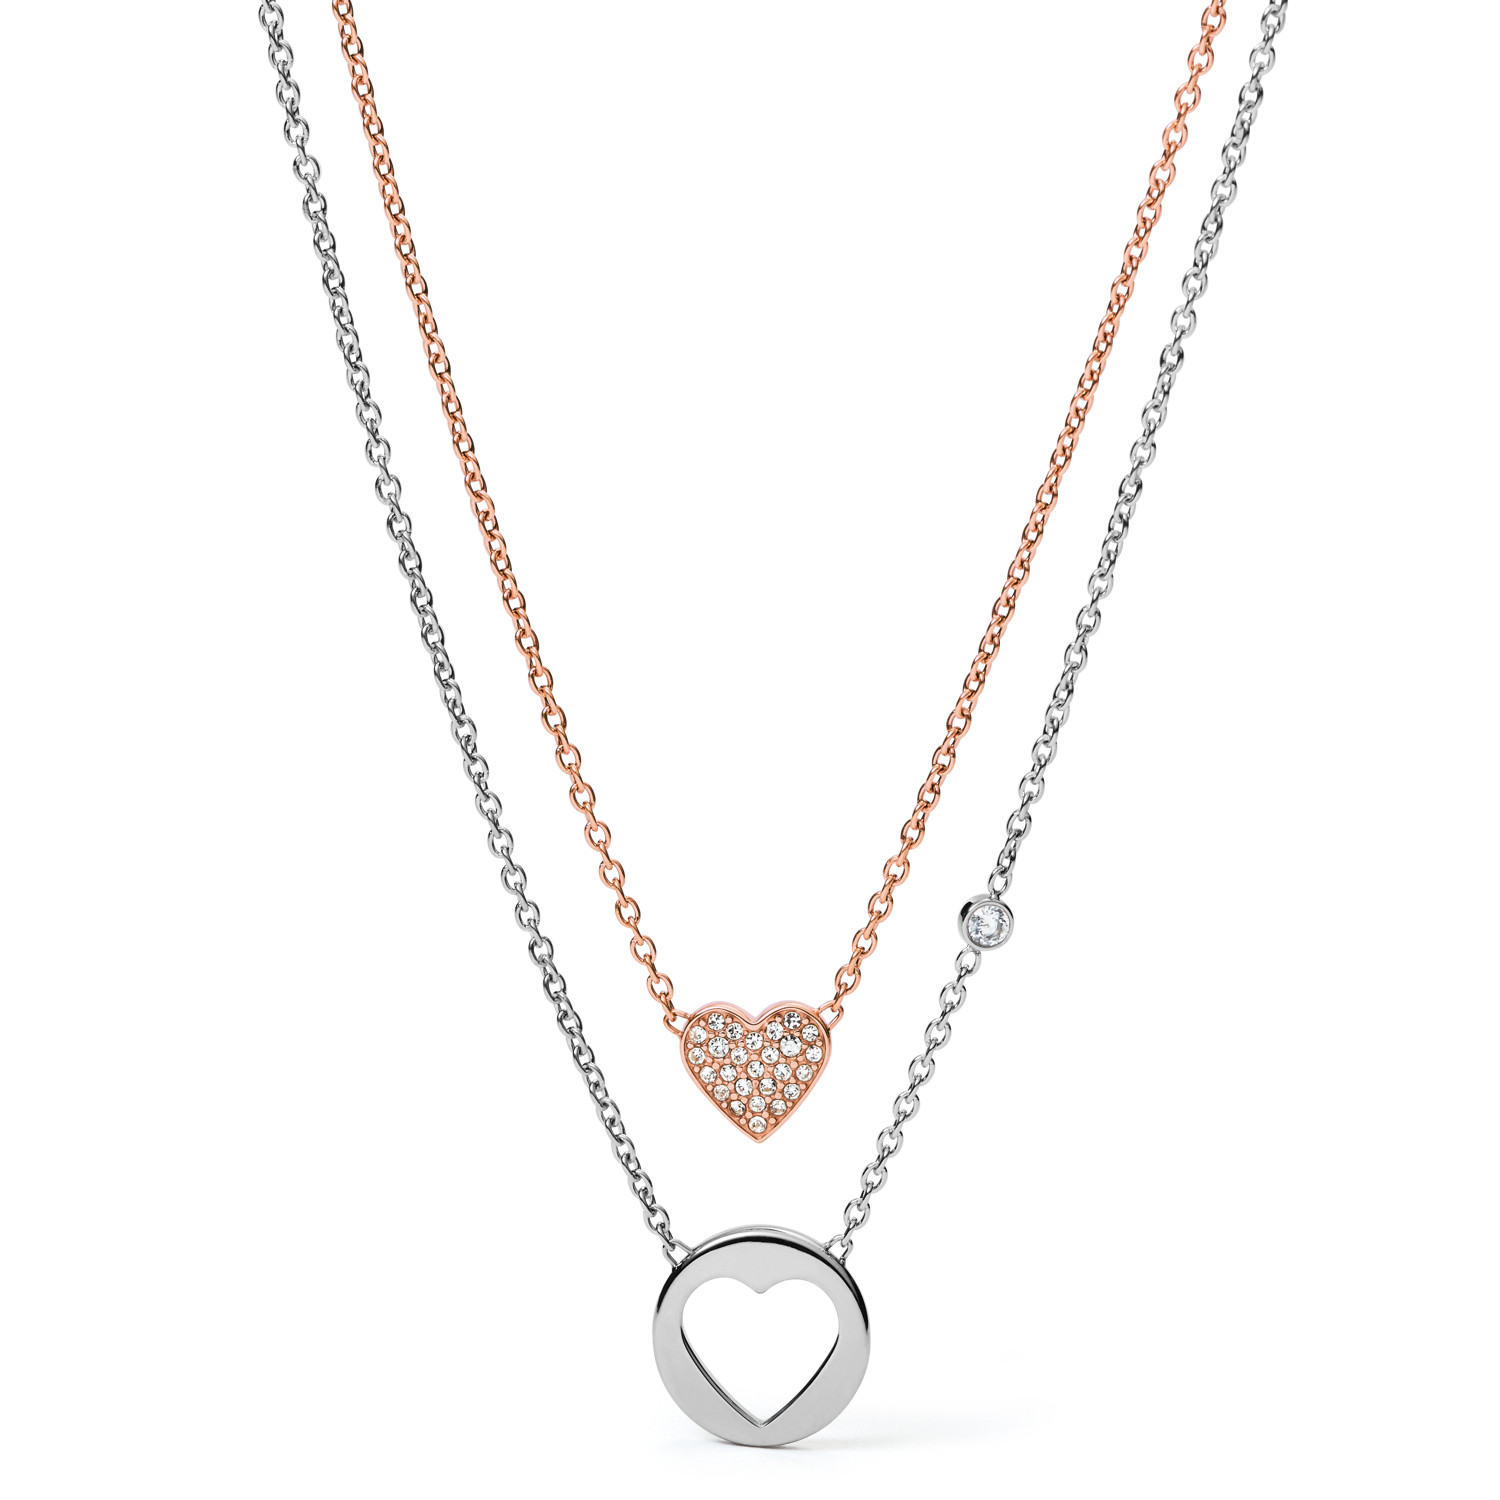 ed gold constrain fit diamond jewelry tiffany pendant white necklace co necklaces wid heart hei jewellery pendants fmt id